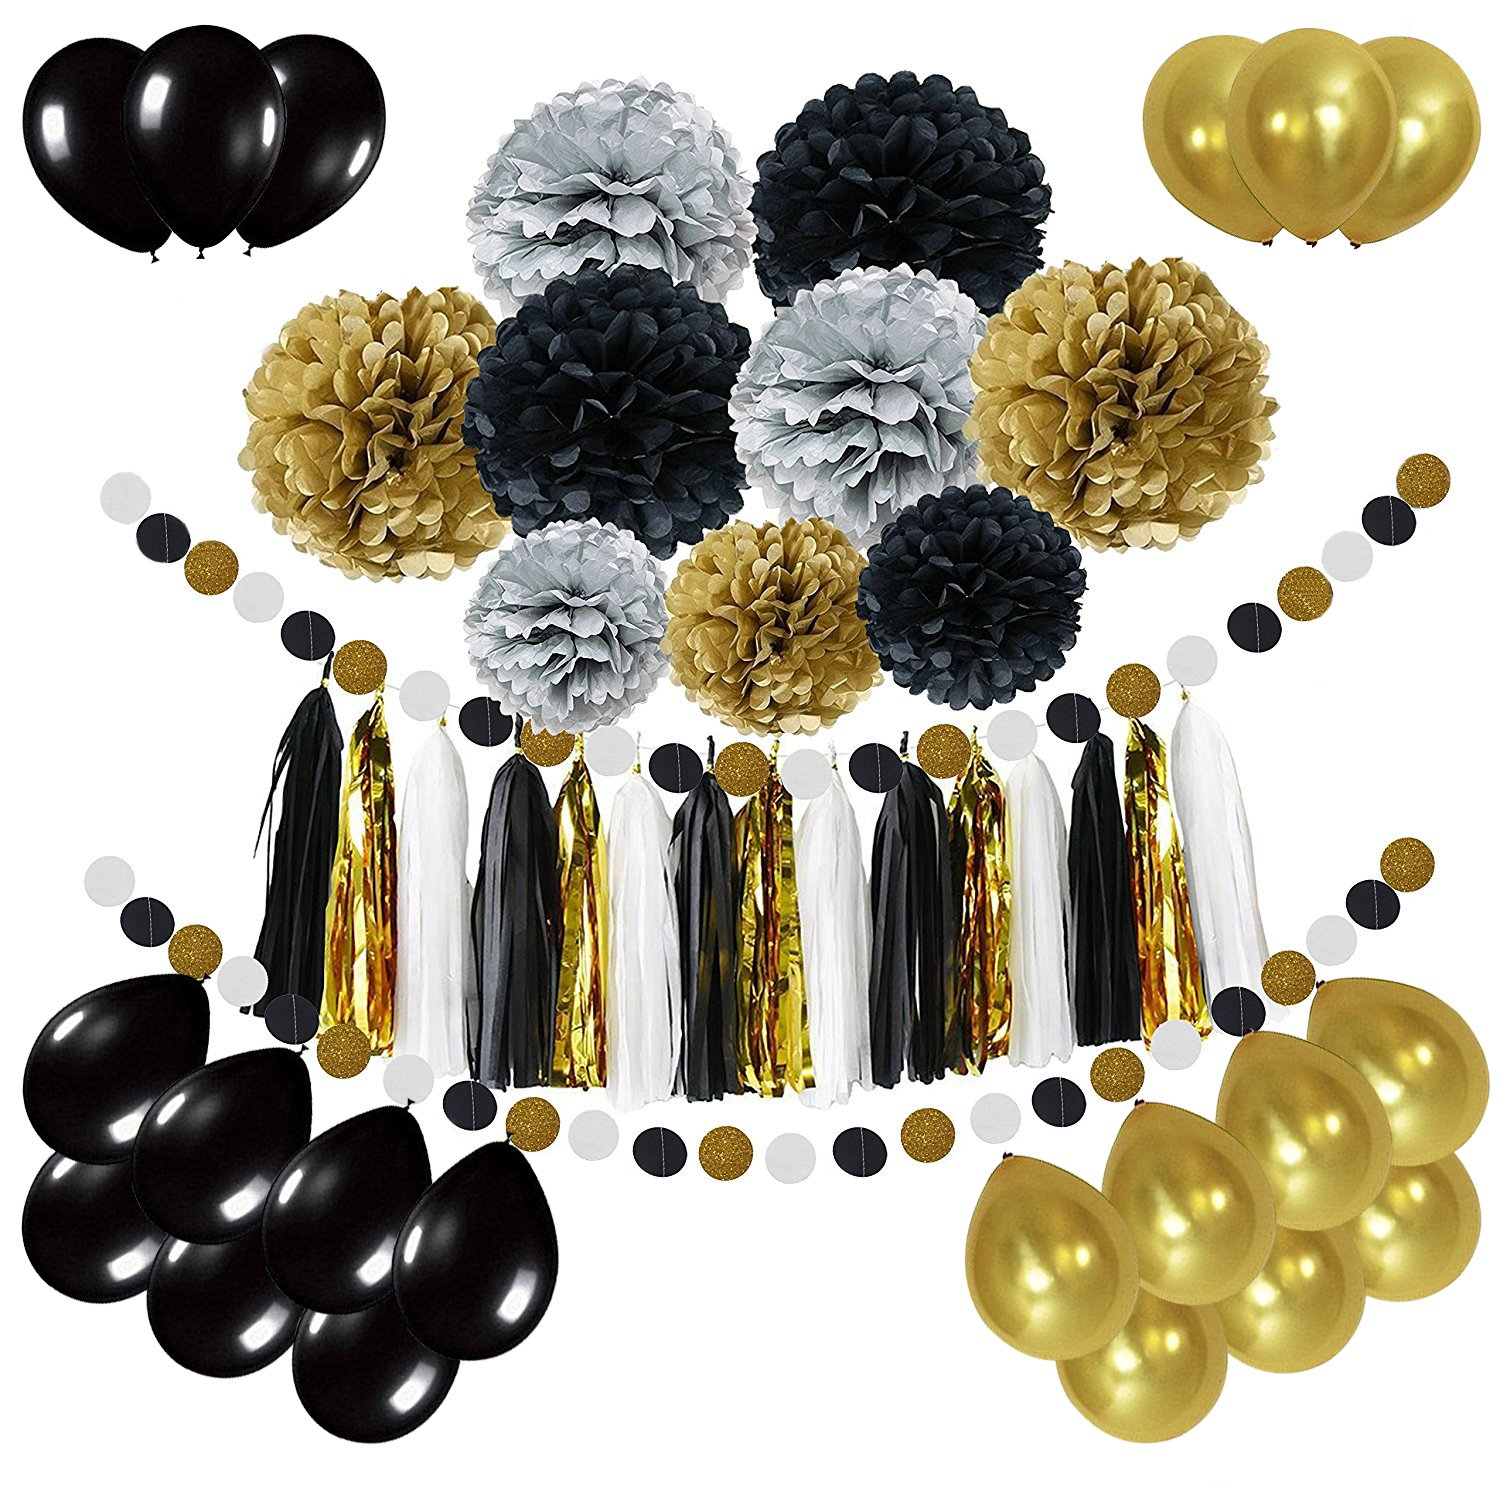 Newland Tissue Paper, 46 pcs Party Decorations, Pom Poms Flowers, Tissue Tassel Garland, Latex Balloons, Polka Dot garland Kit, For Wedding Birthday Party Festival Decorations (Black Silver Gold)